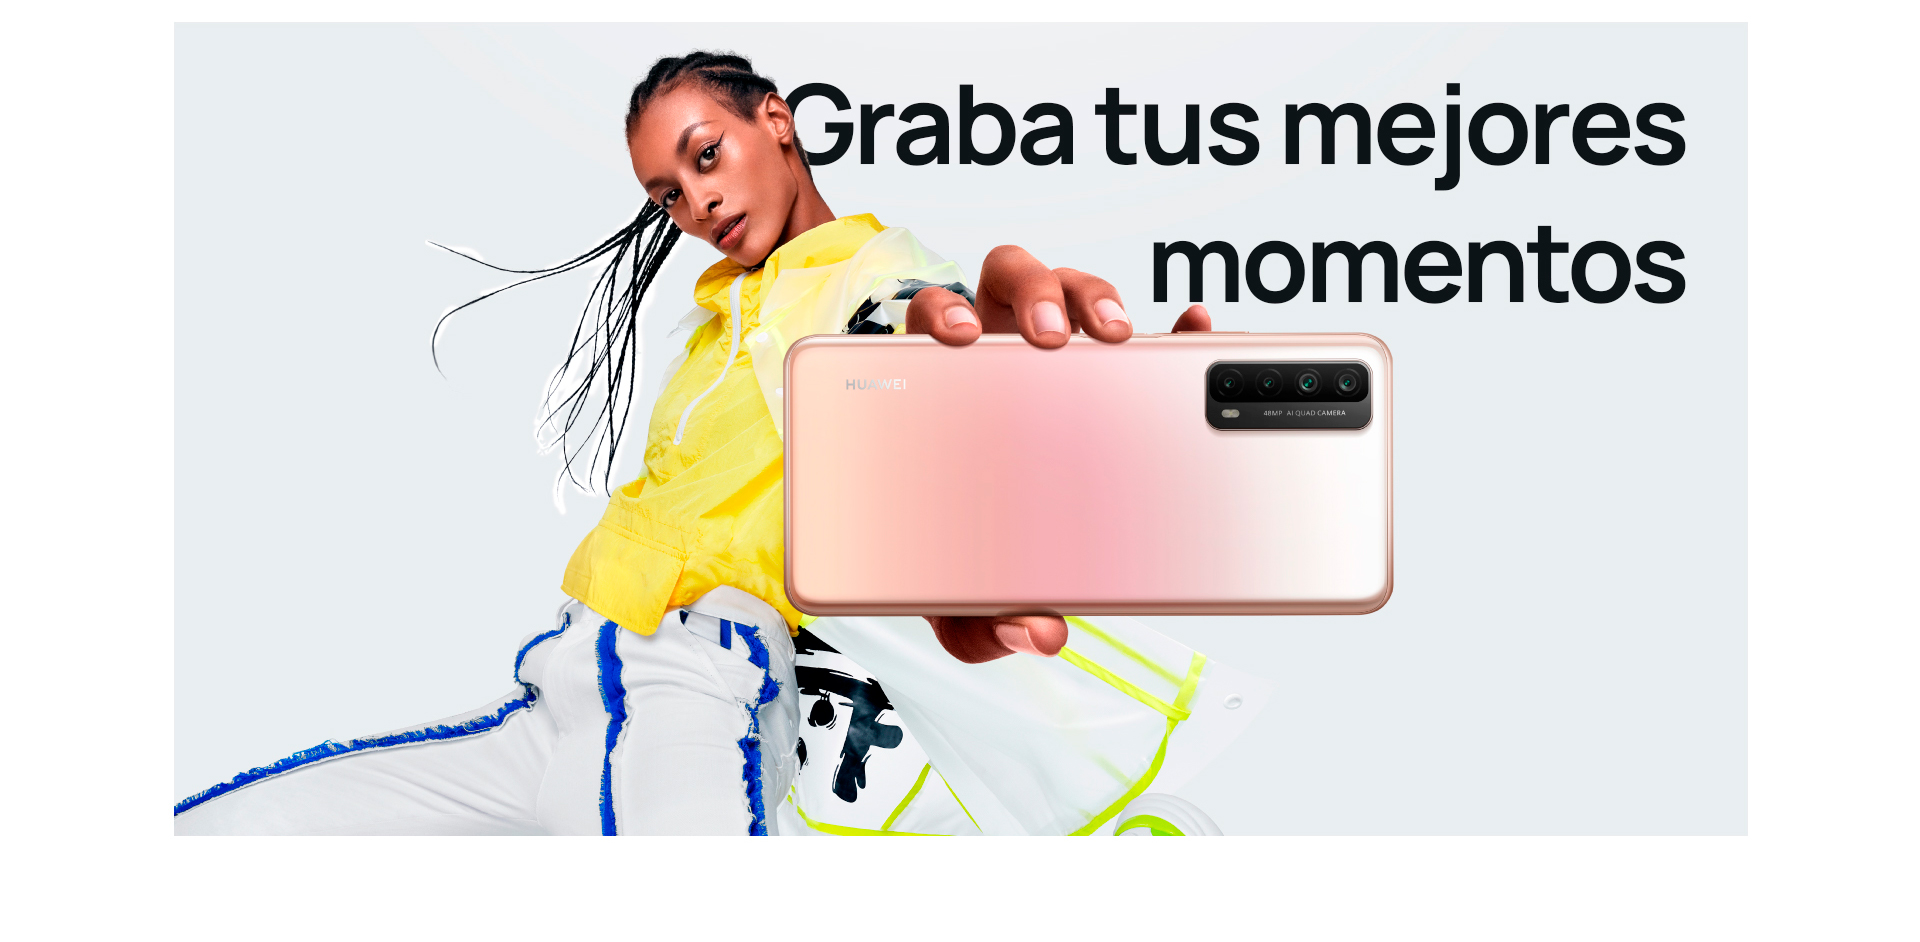 Huawei Y7a + Record your best moment